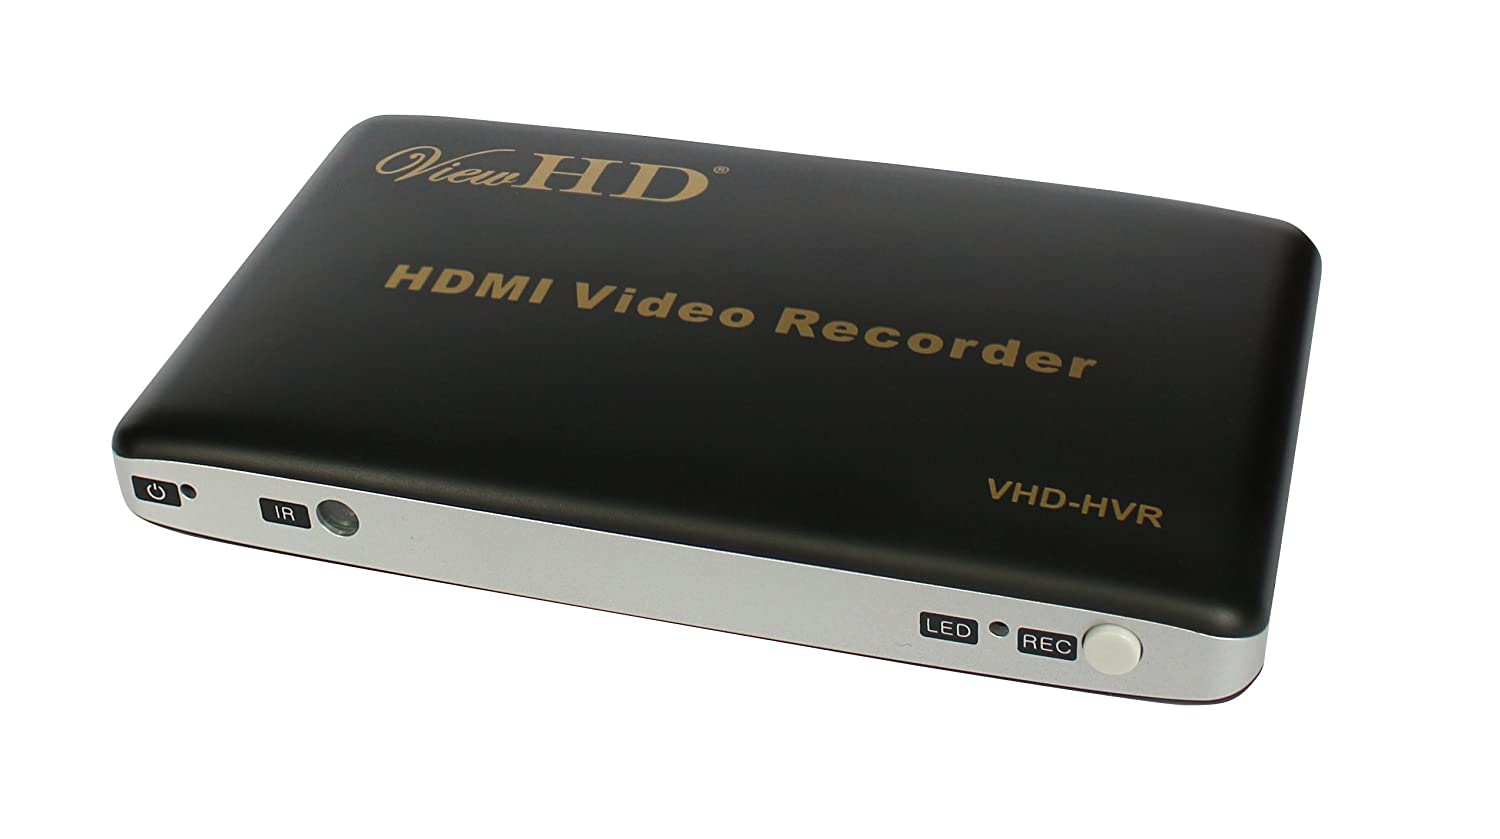 ViewHD HDMI Video Recorder | 1080P Video & Screen Photo Capture + Video & Photo Playback + Universal PAL/NTSC Conversion / Output Scaler + Remote Control | Model: VHD-HVR